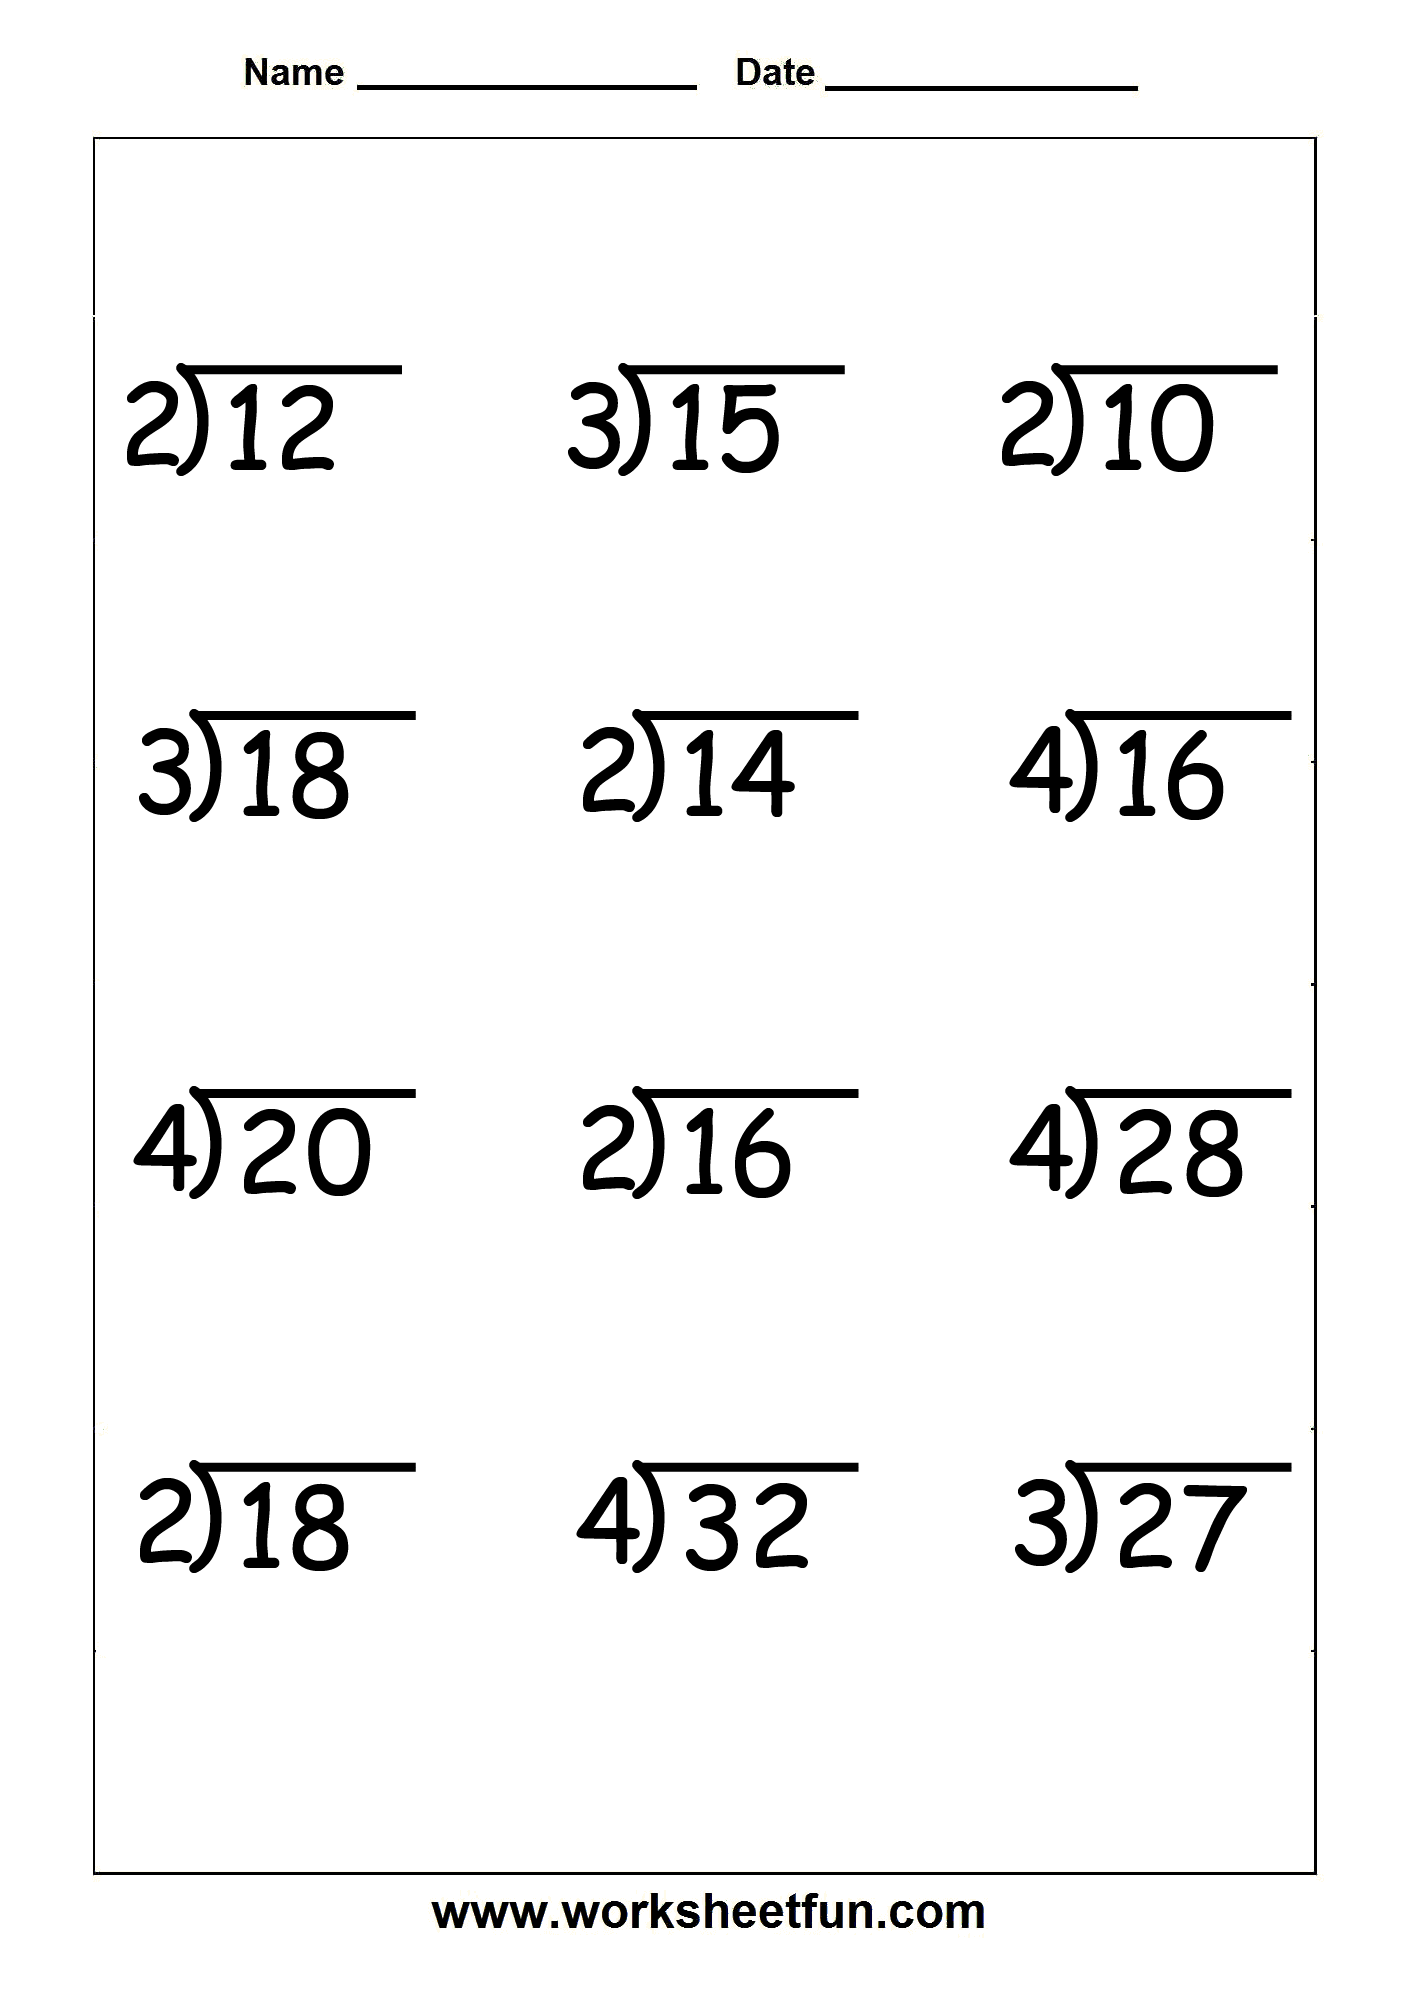 Collection Of Division And Multiplication Worksheets For 3rd Grade